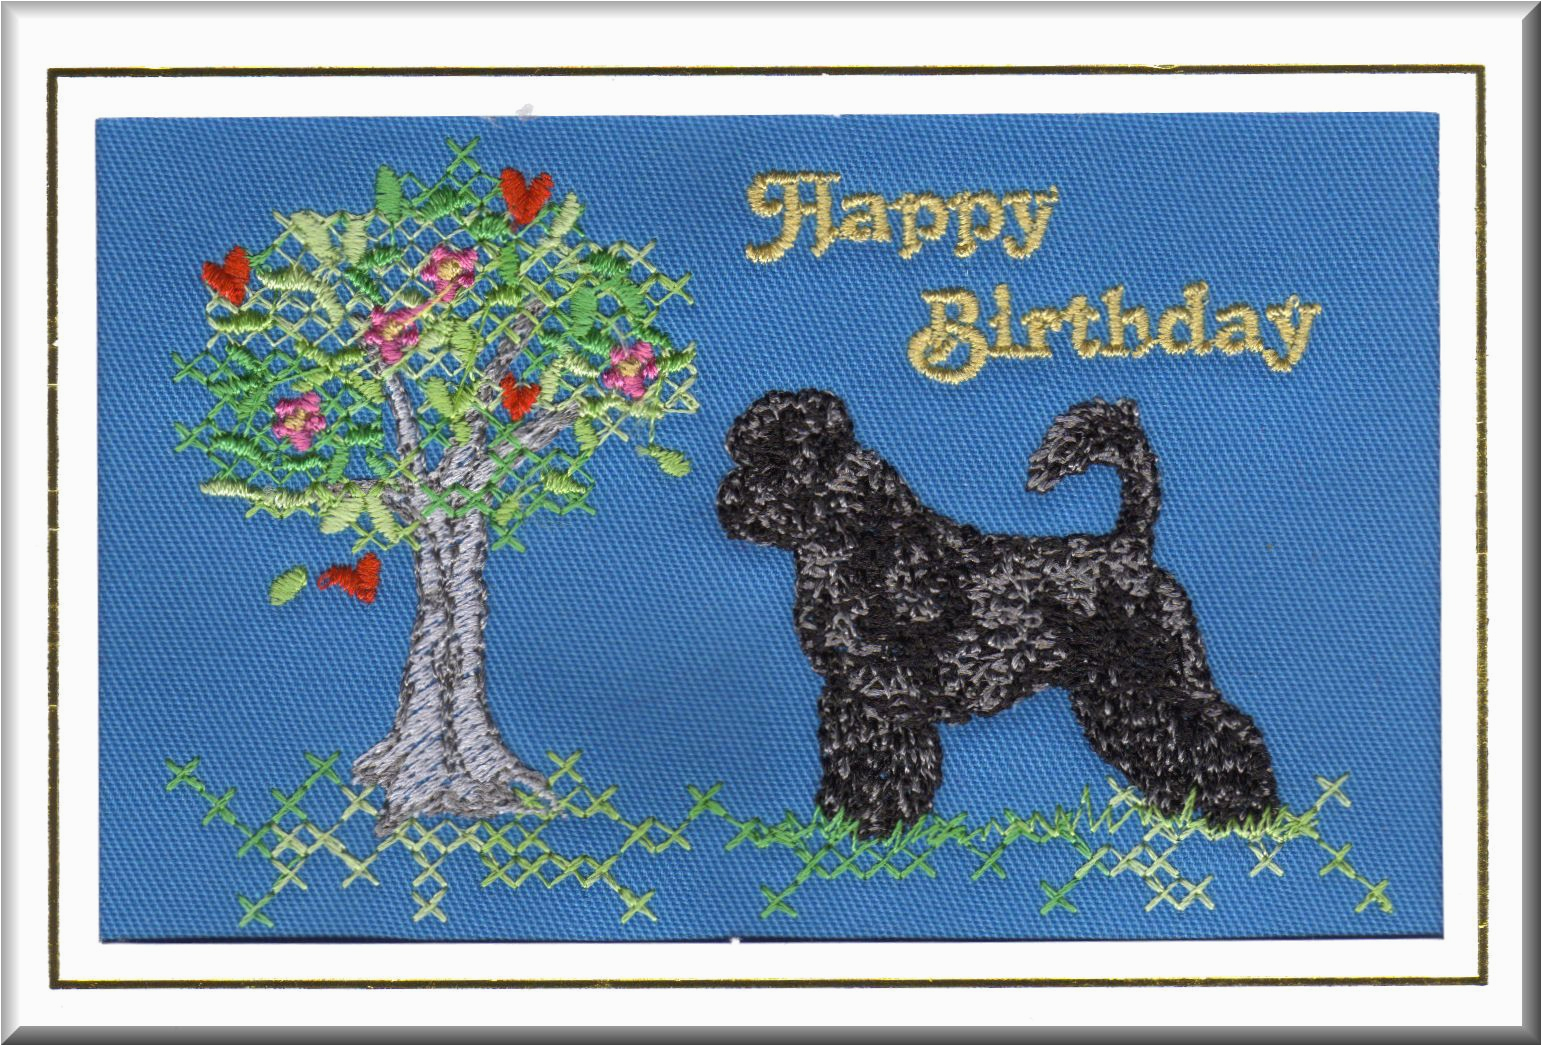 bportuguese water dog birthday card embroidered by dogmania 8 x 6 g3241b 21199 p